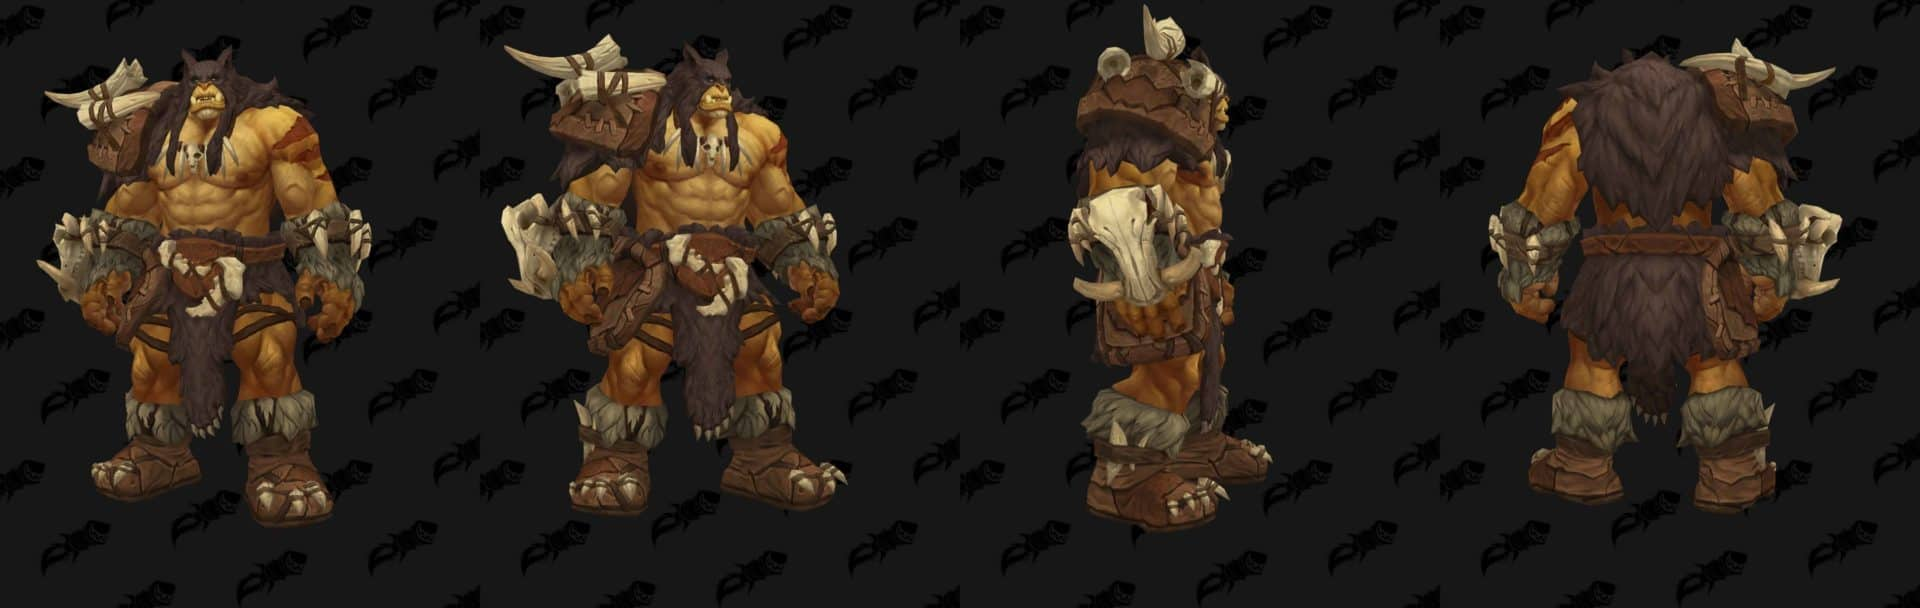 Rexxar Battle for Azeroth